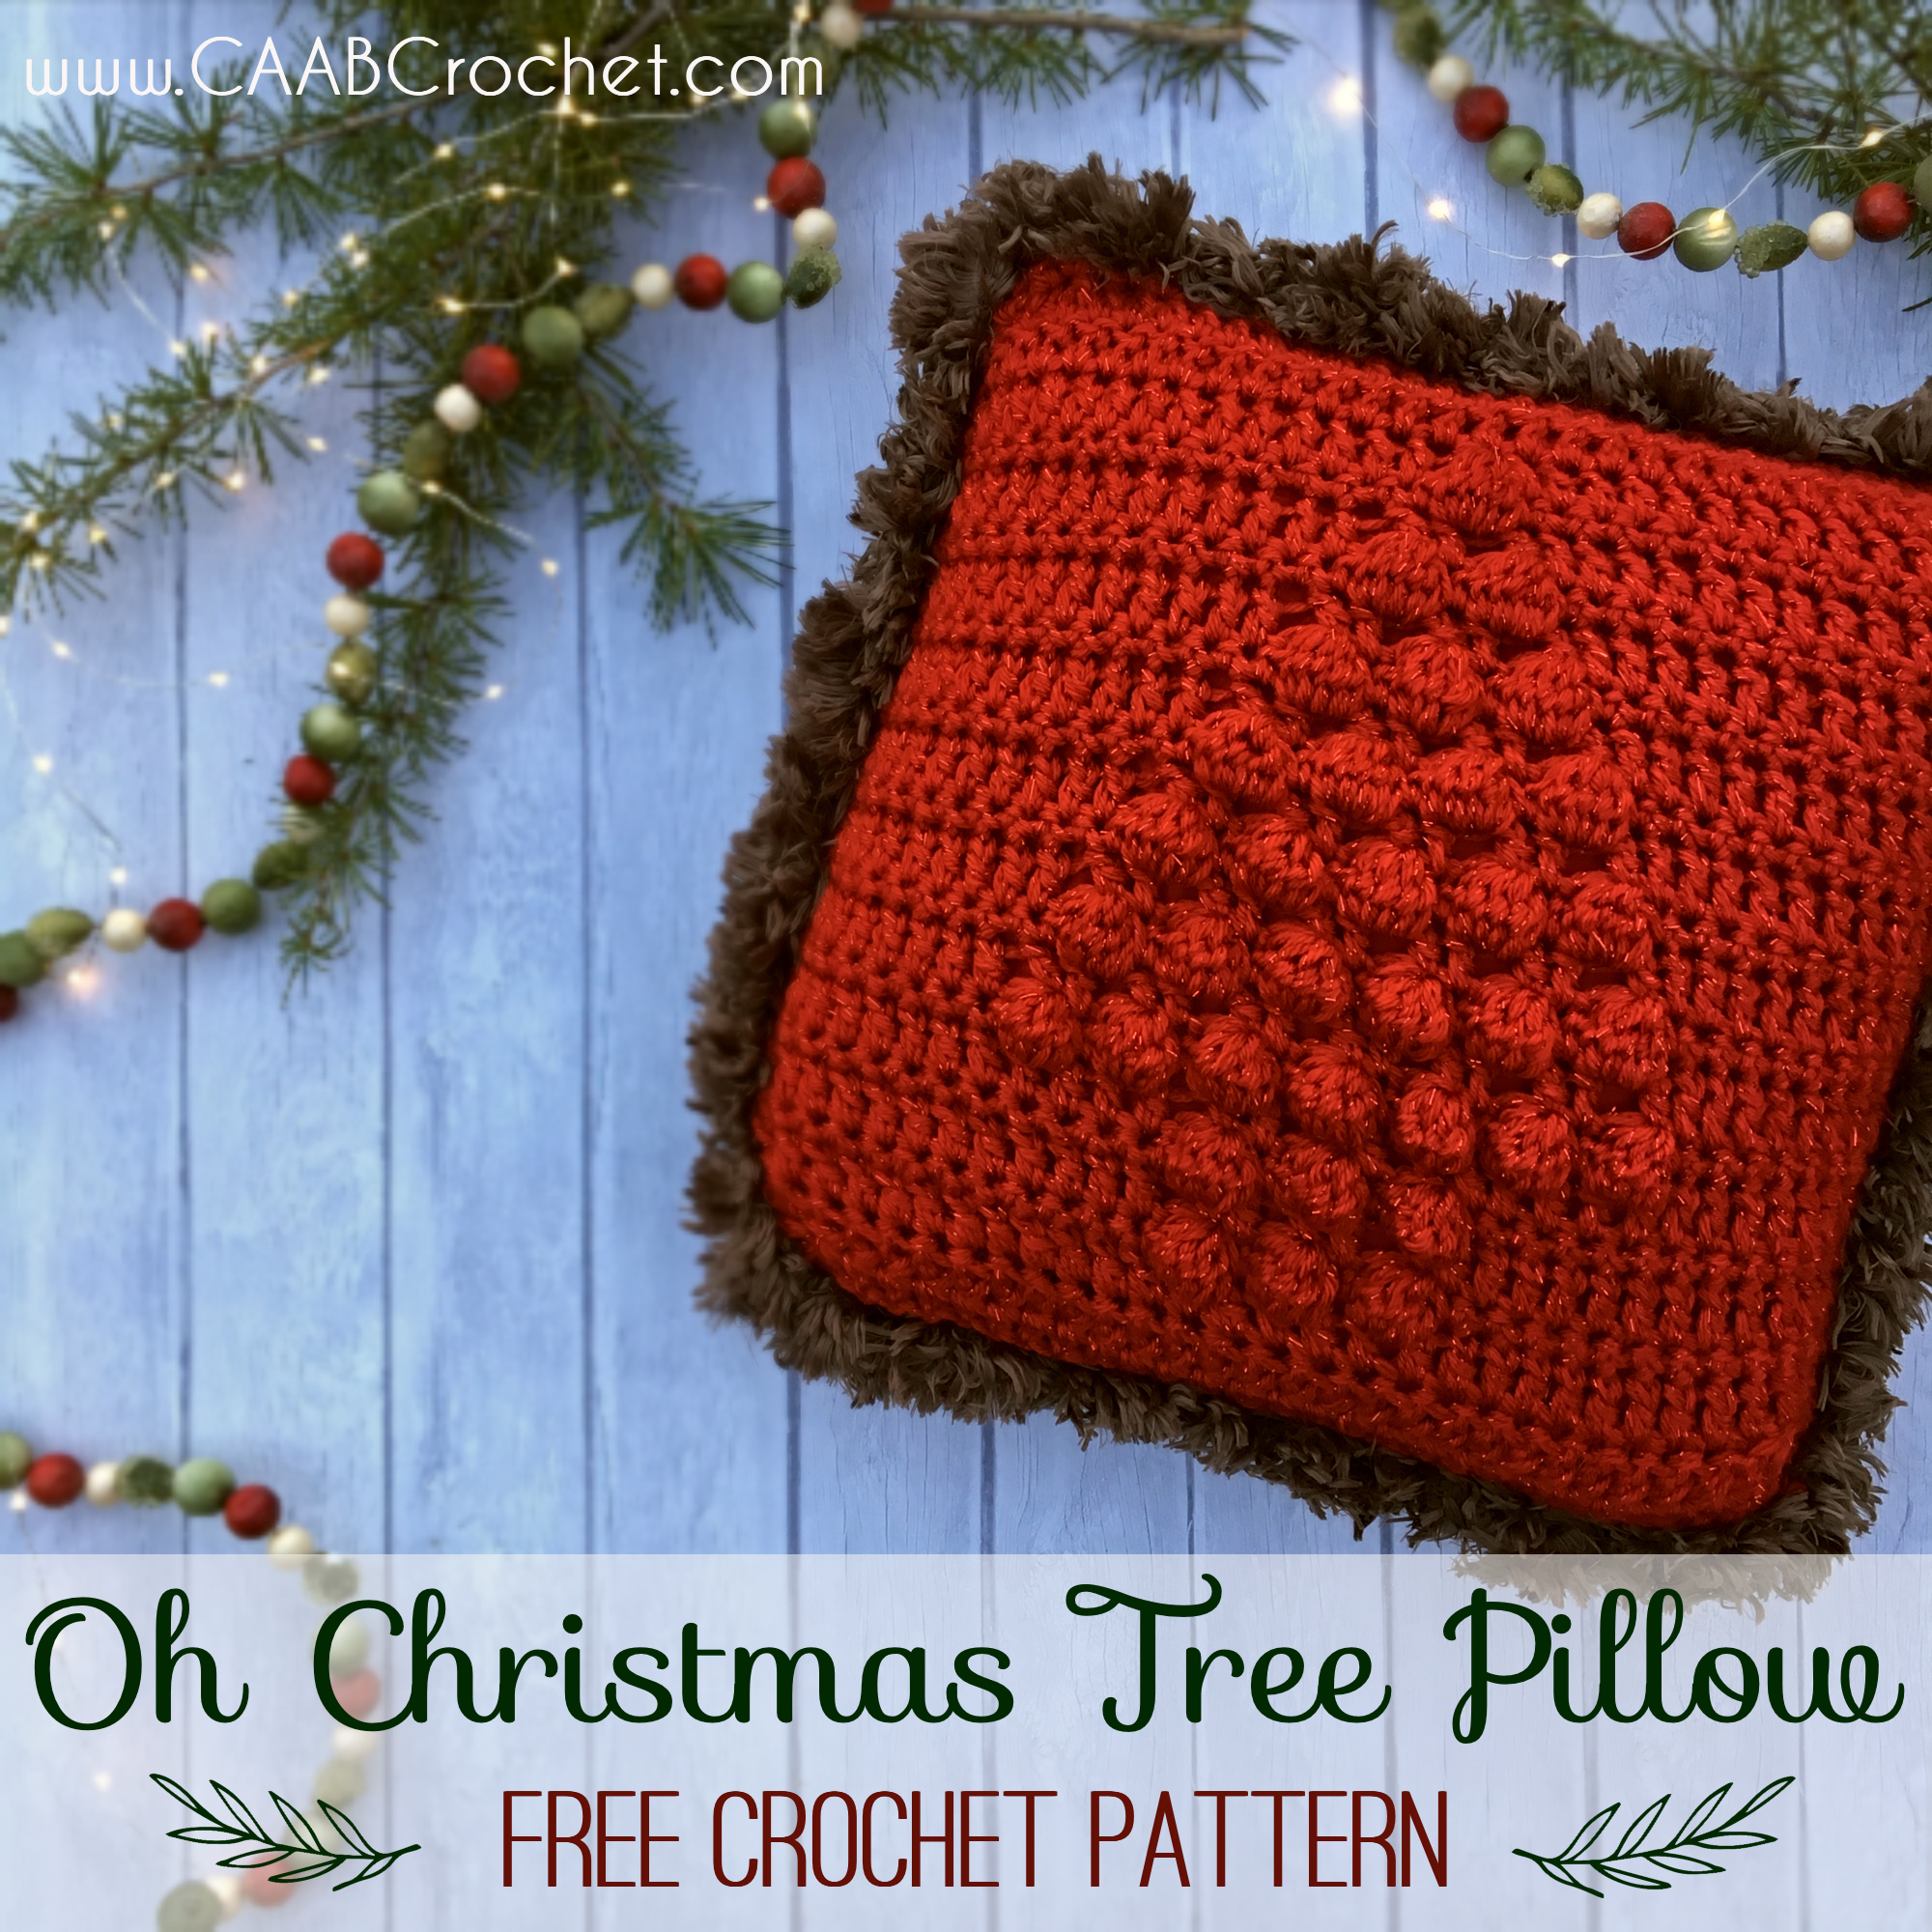 Oh Christmas Tree Pillow A Free Crochet Christmas Pillow Pattern